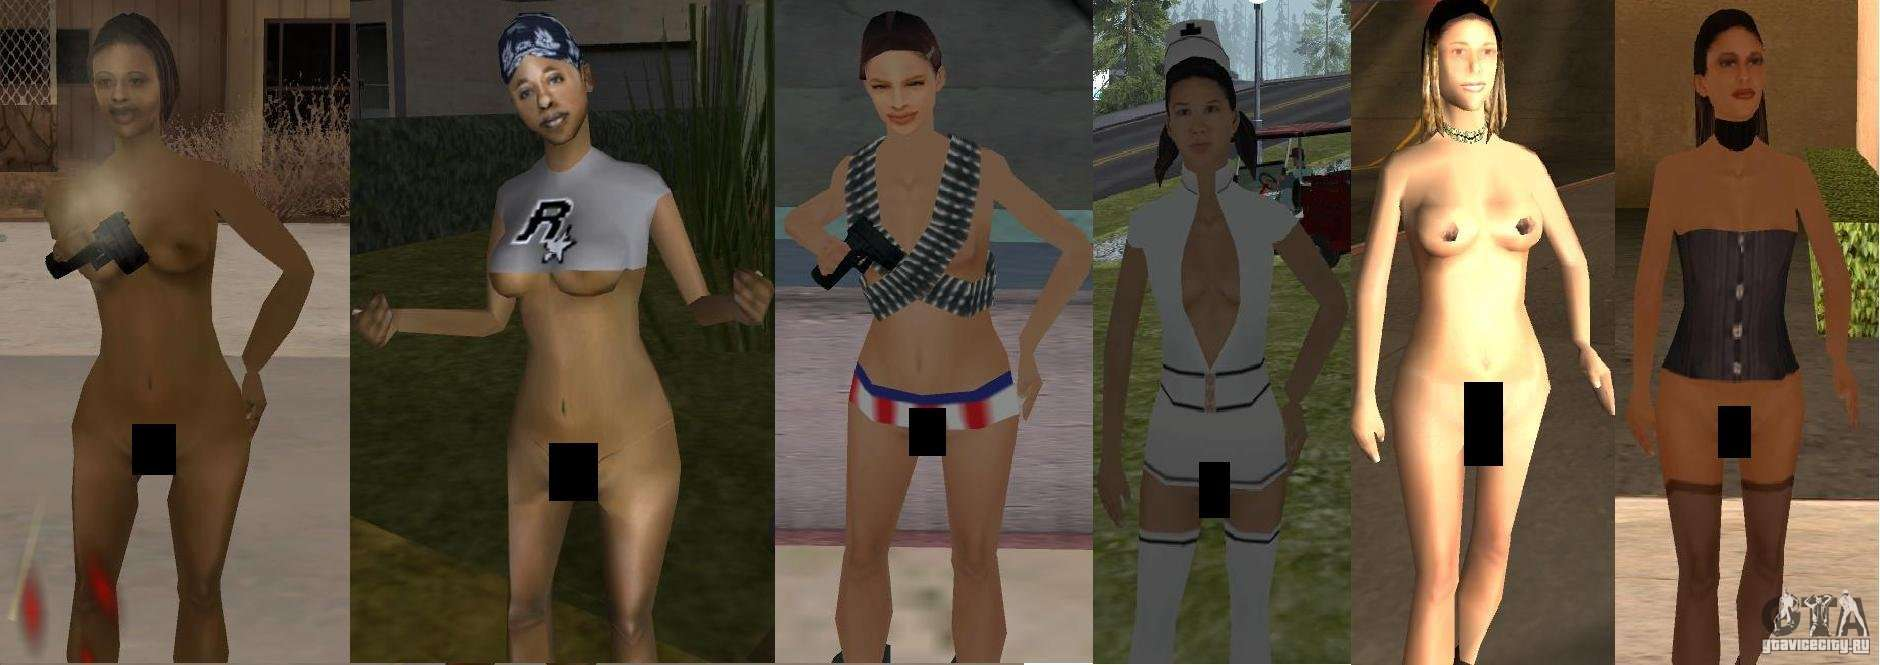 Gta v nude photo girl hack anime photos